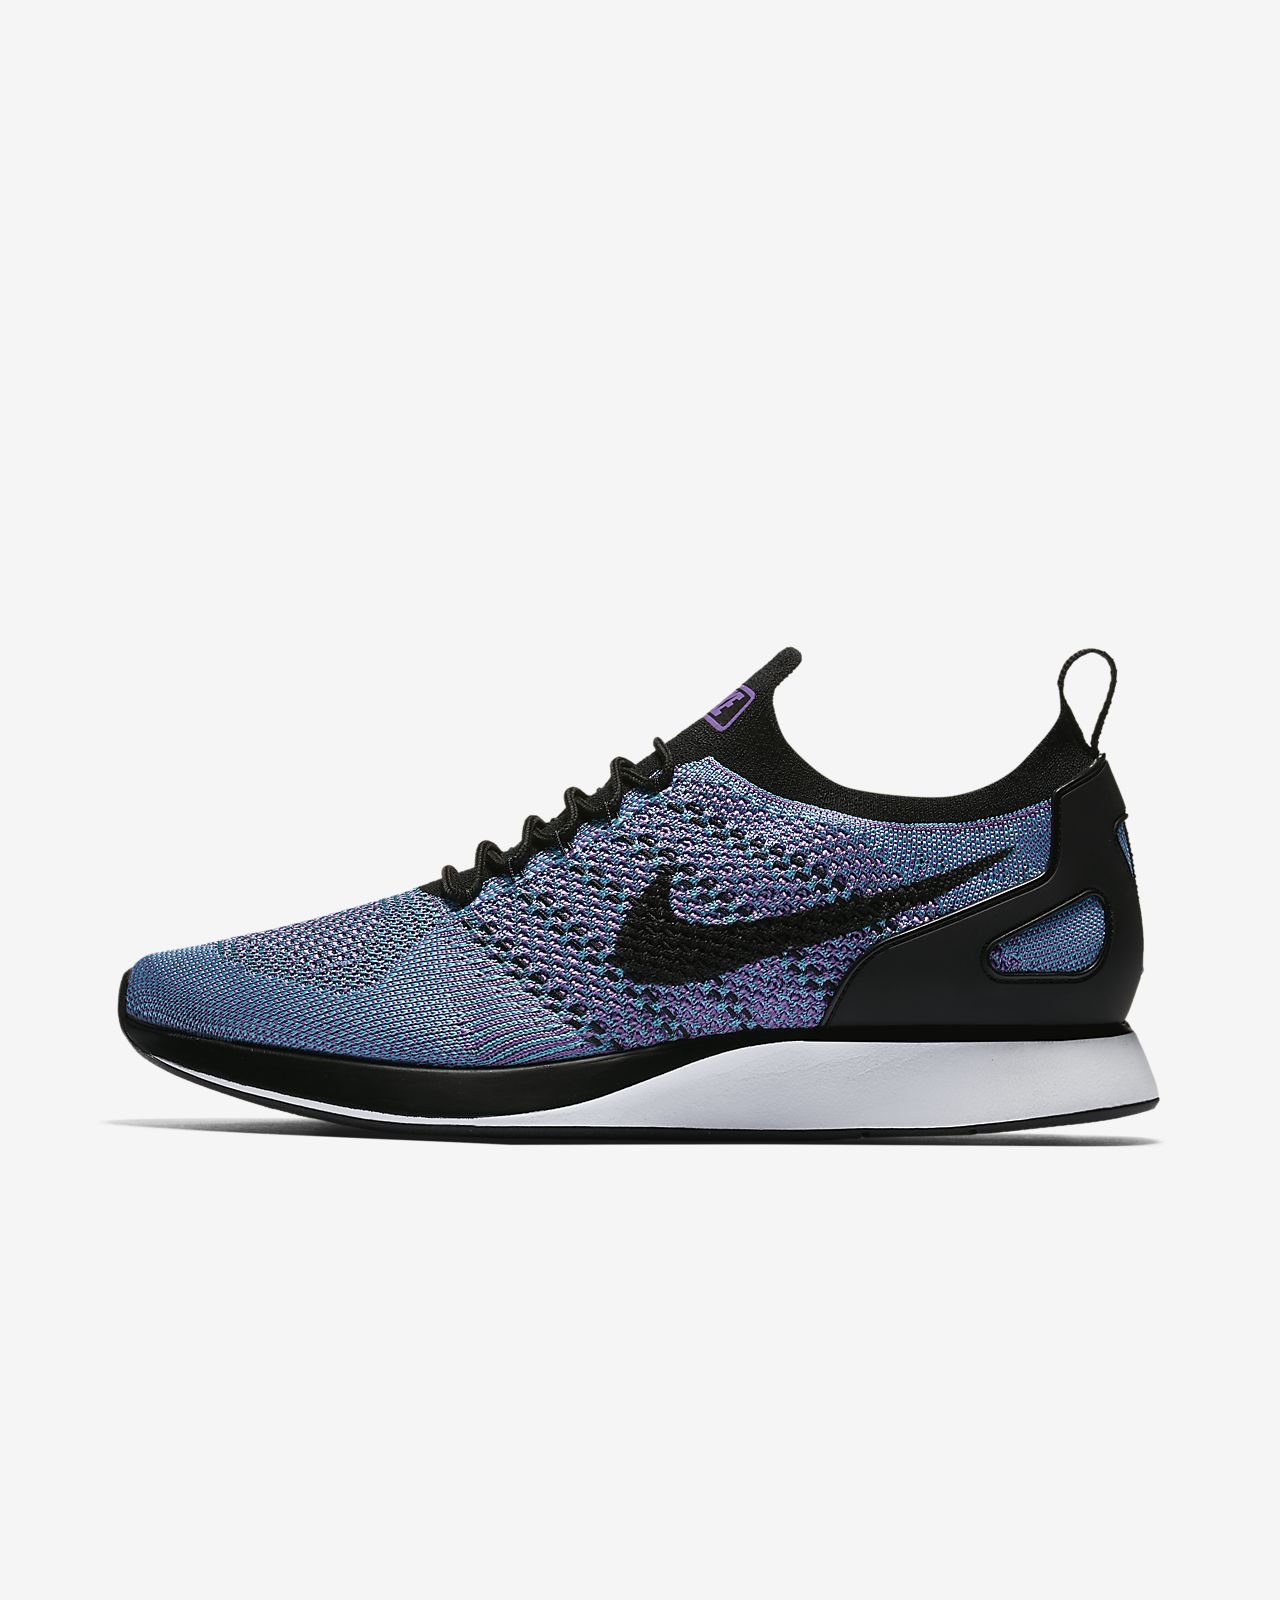 Nike Air Zoom Mariah Flyknit Racer Mens Shoe